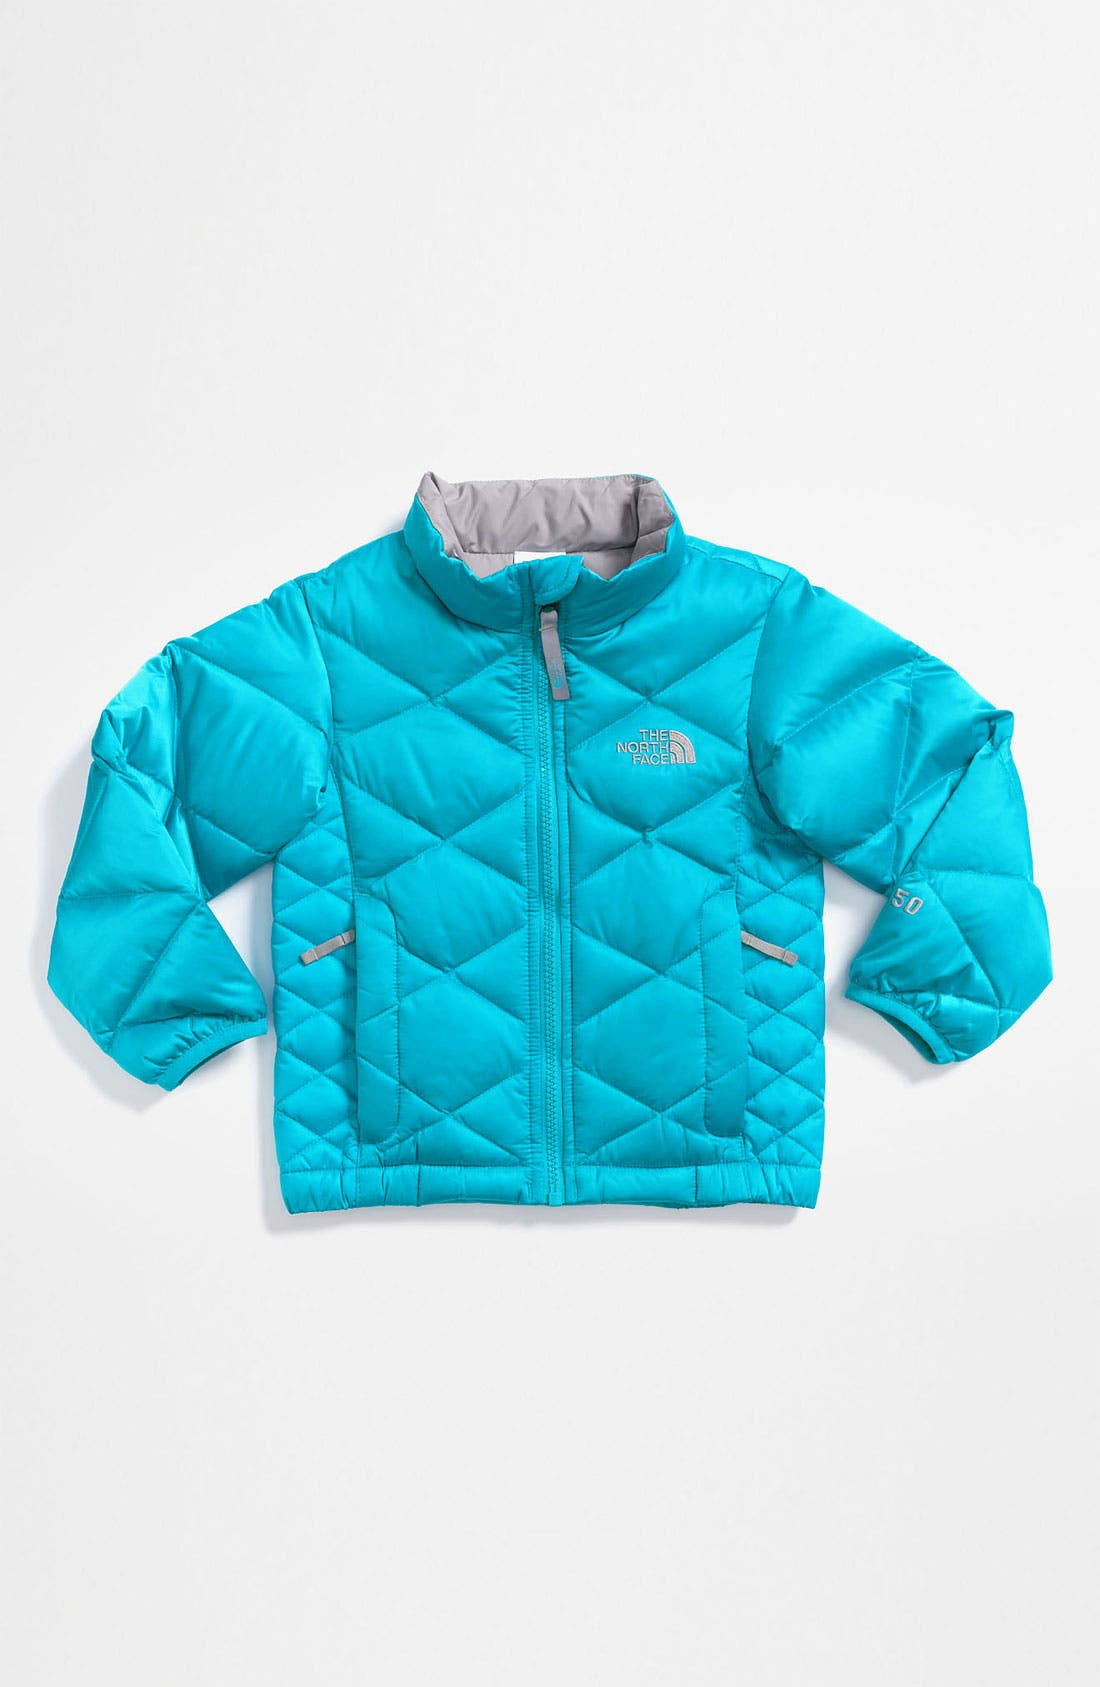 Main Image - The North Face 'Aconcagua' Jacket (Toddler Girls)